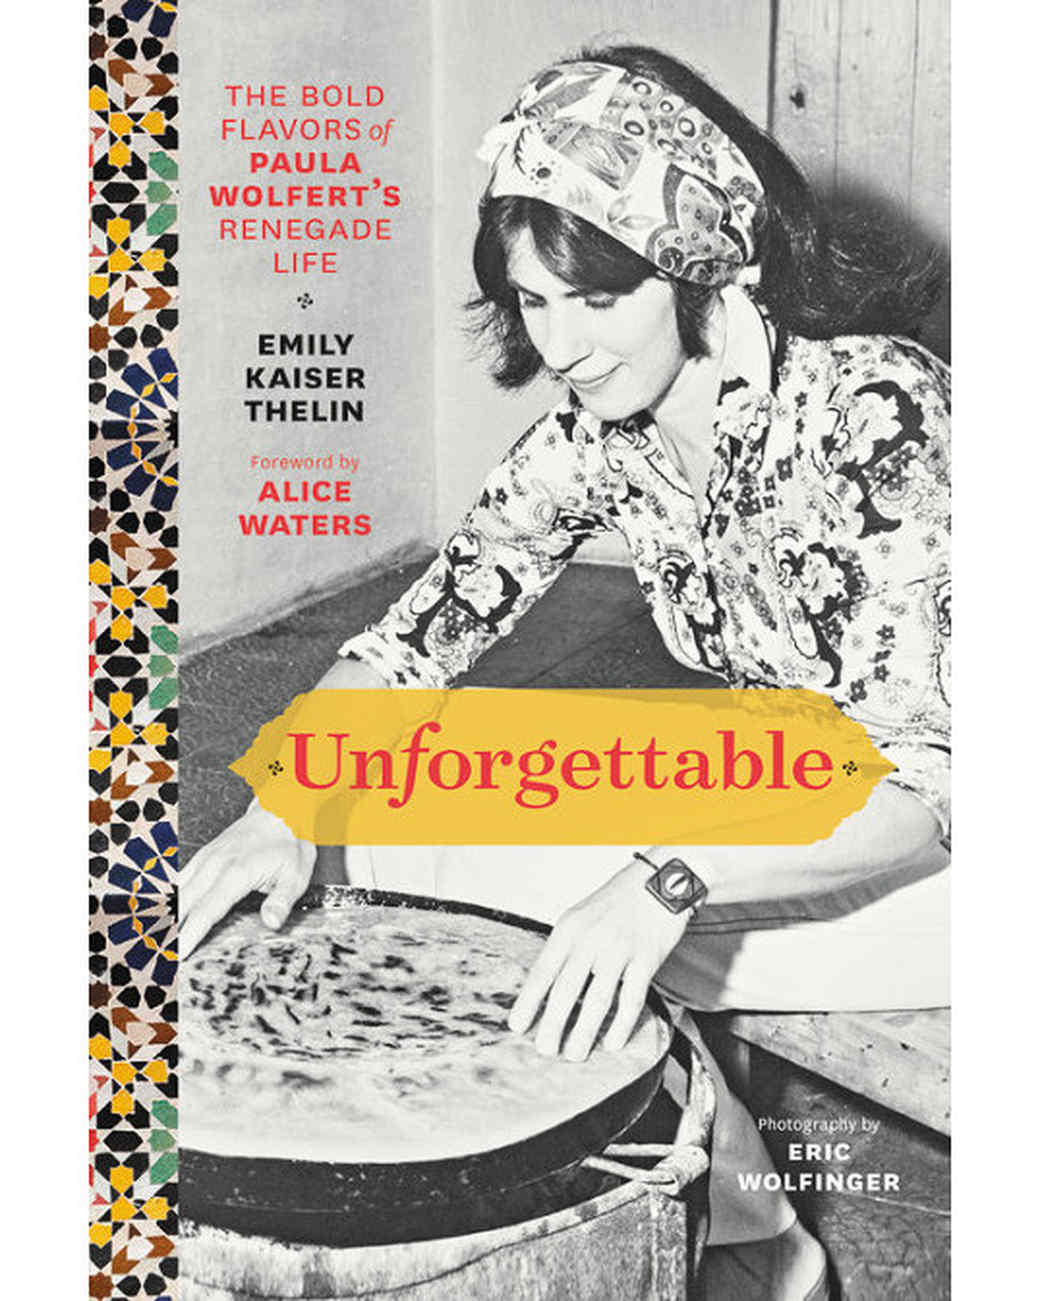 unfortettable cookbook